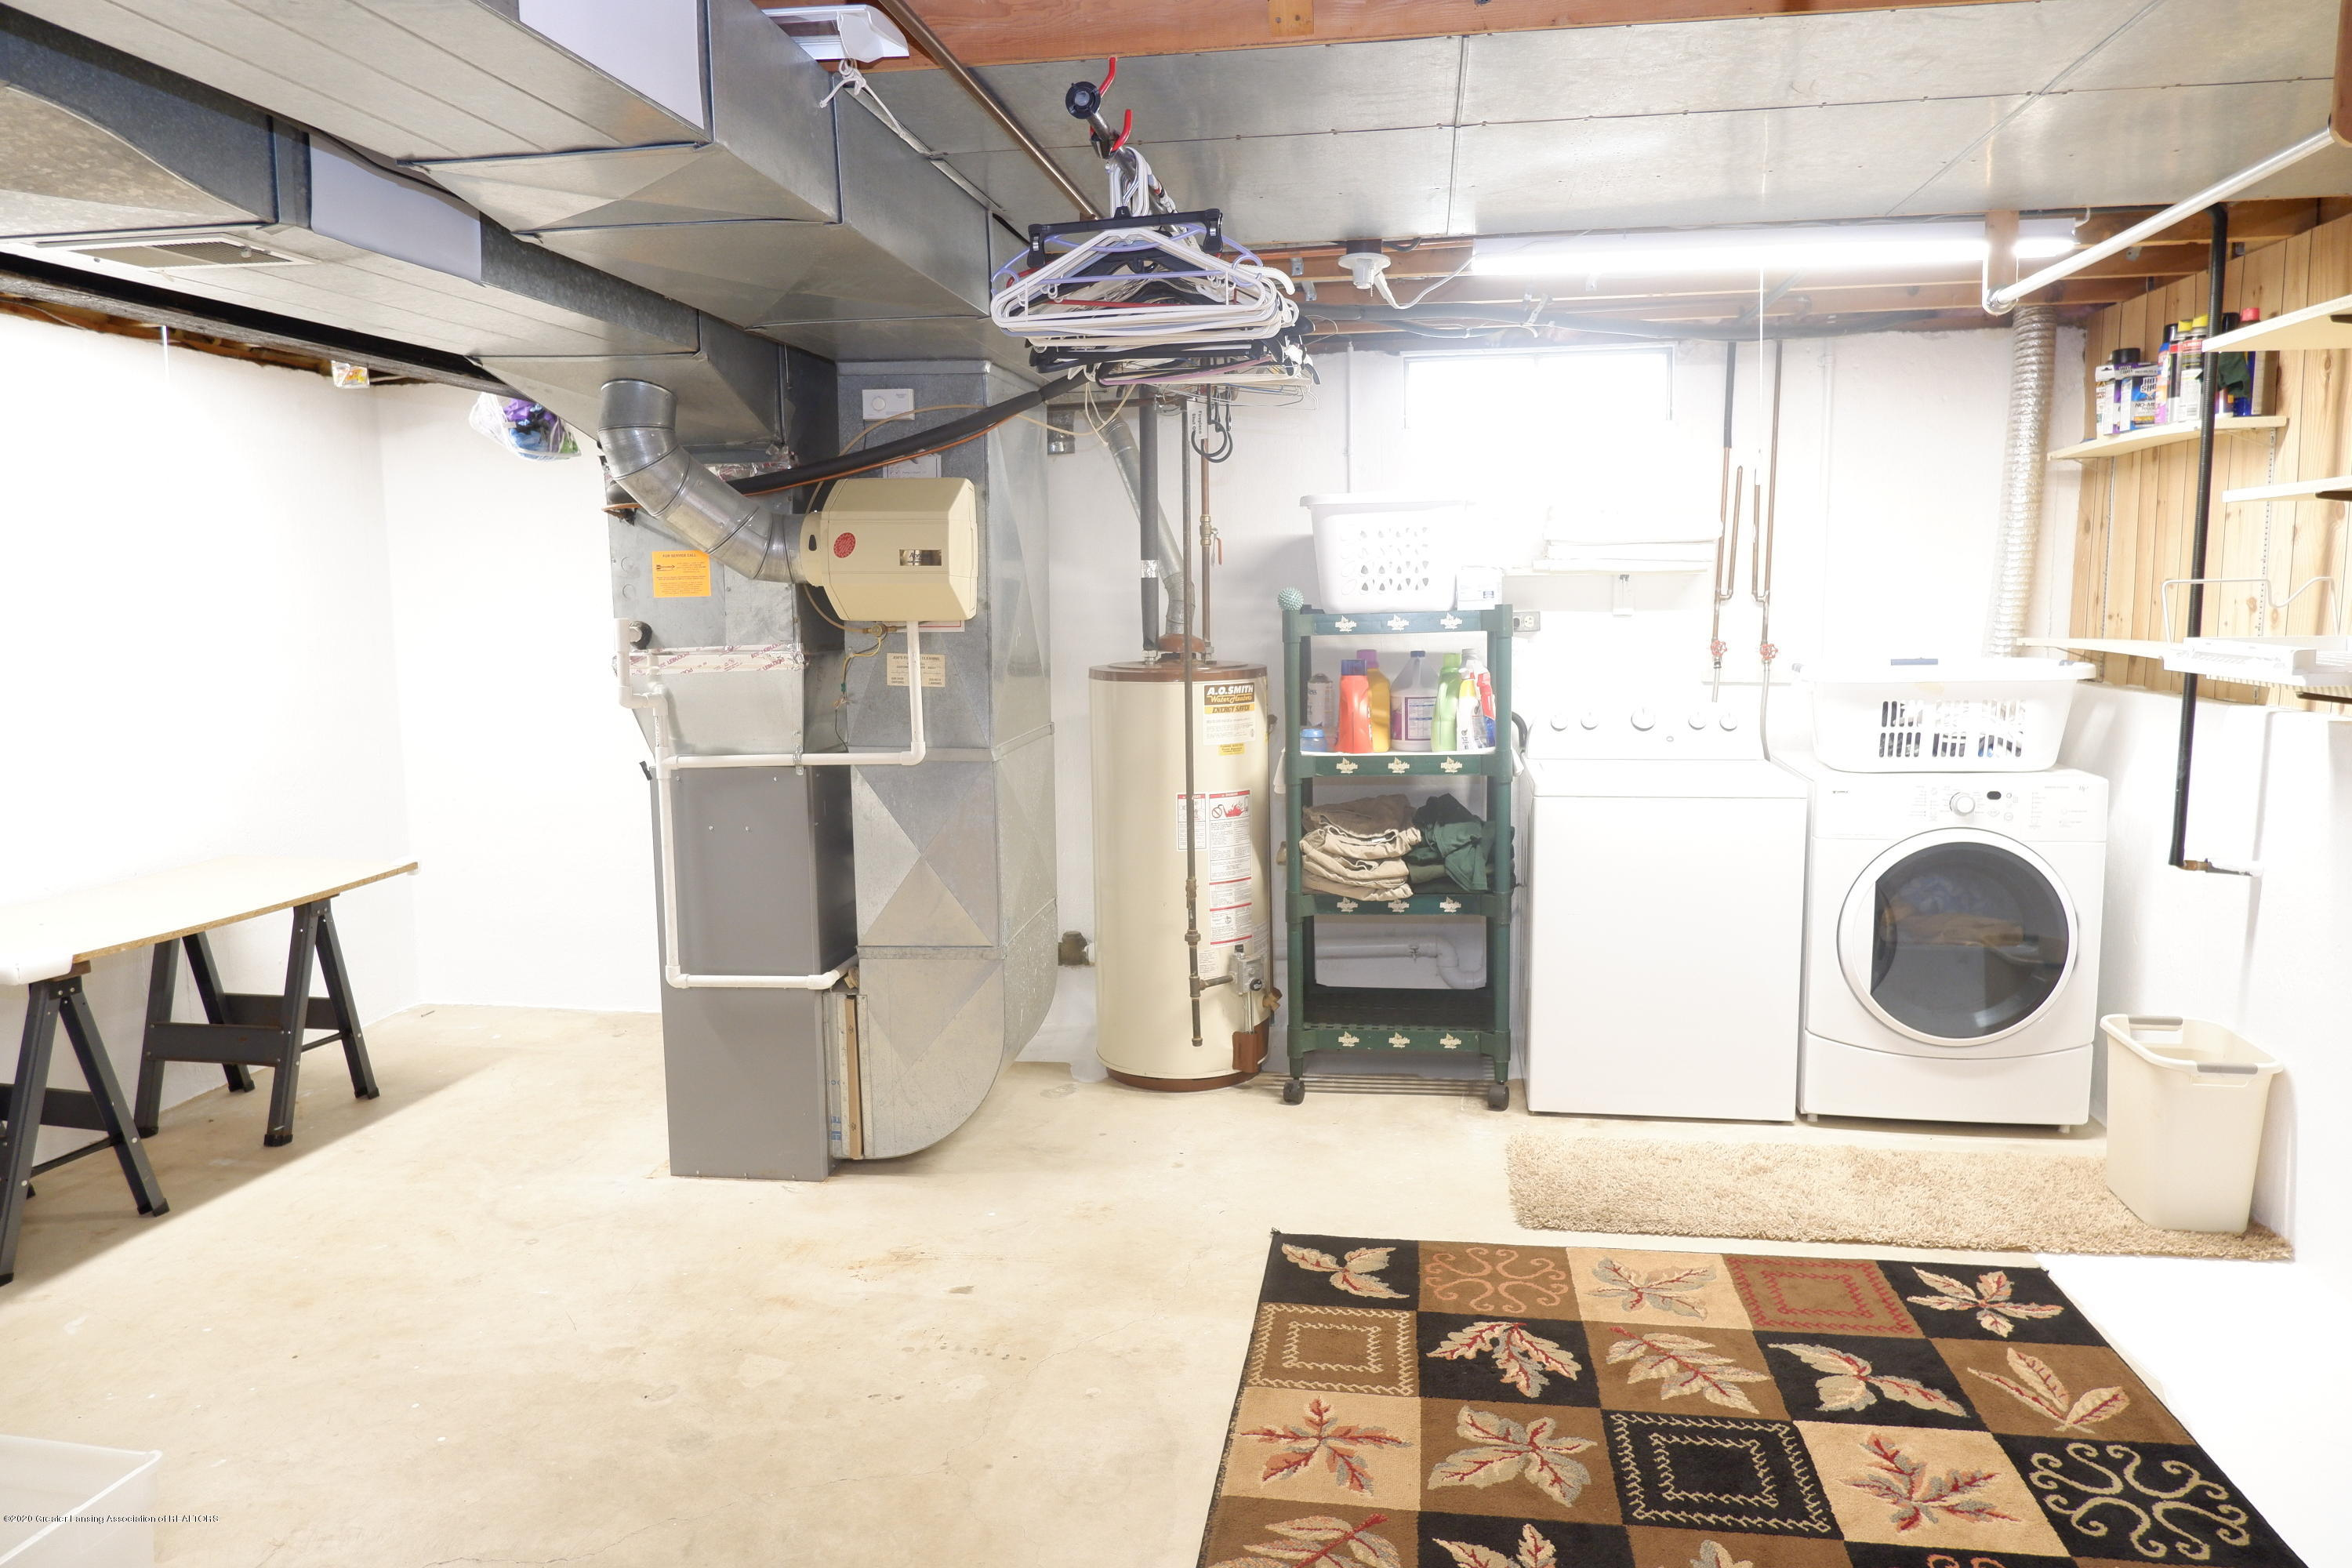 968 Touraine Ave - Laundry area in bsmt - 31